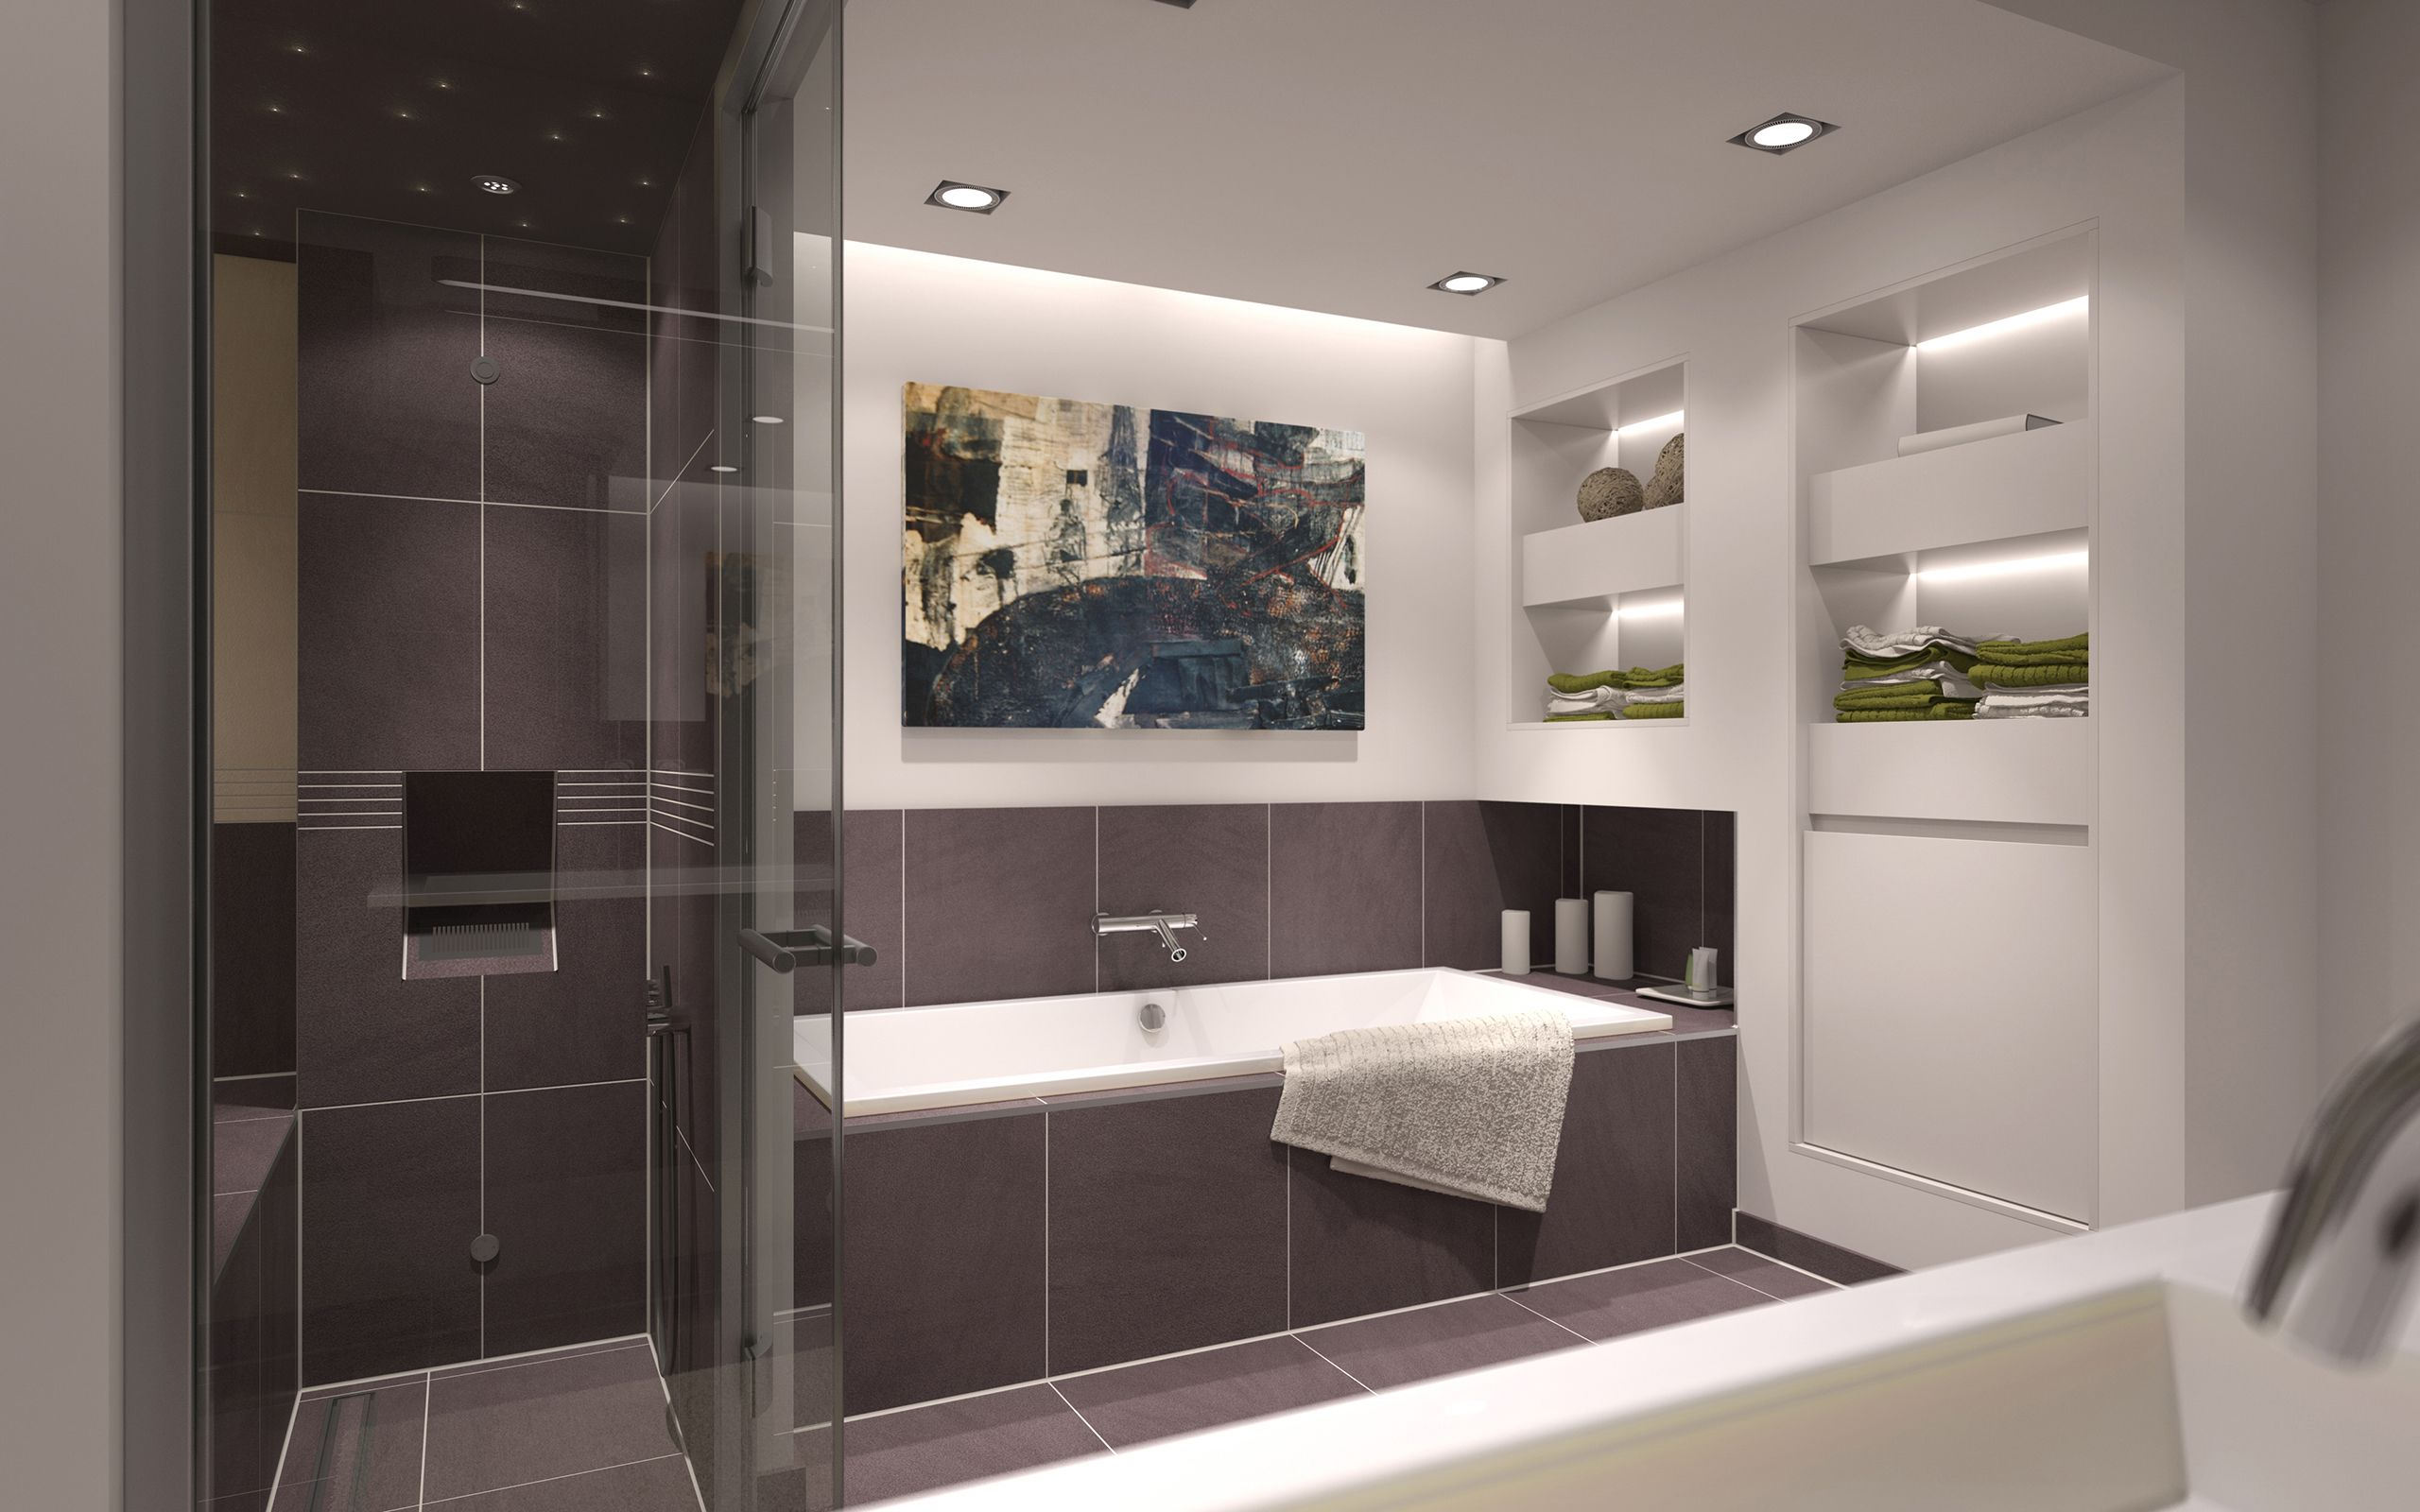 Professional Advice And Support When Planning Or Installing Your Sauna Sanarium Steam Bath Or Inf Bathroom Remodel Designs Small Kids Room Bathrooms Remodel